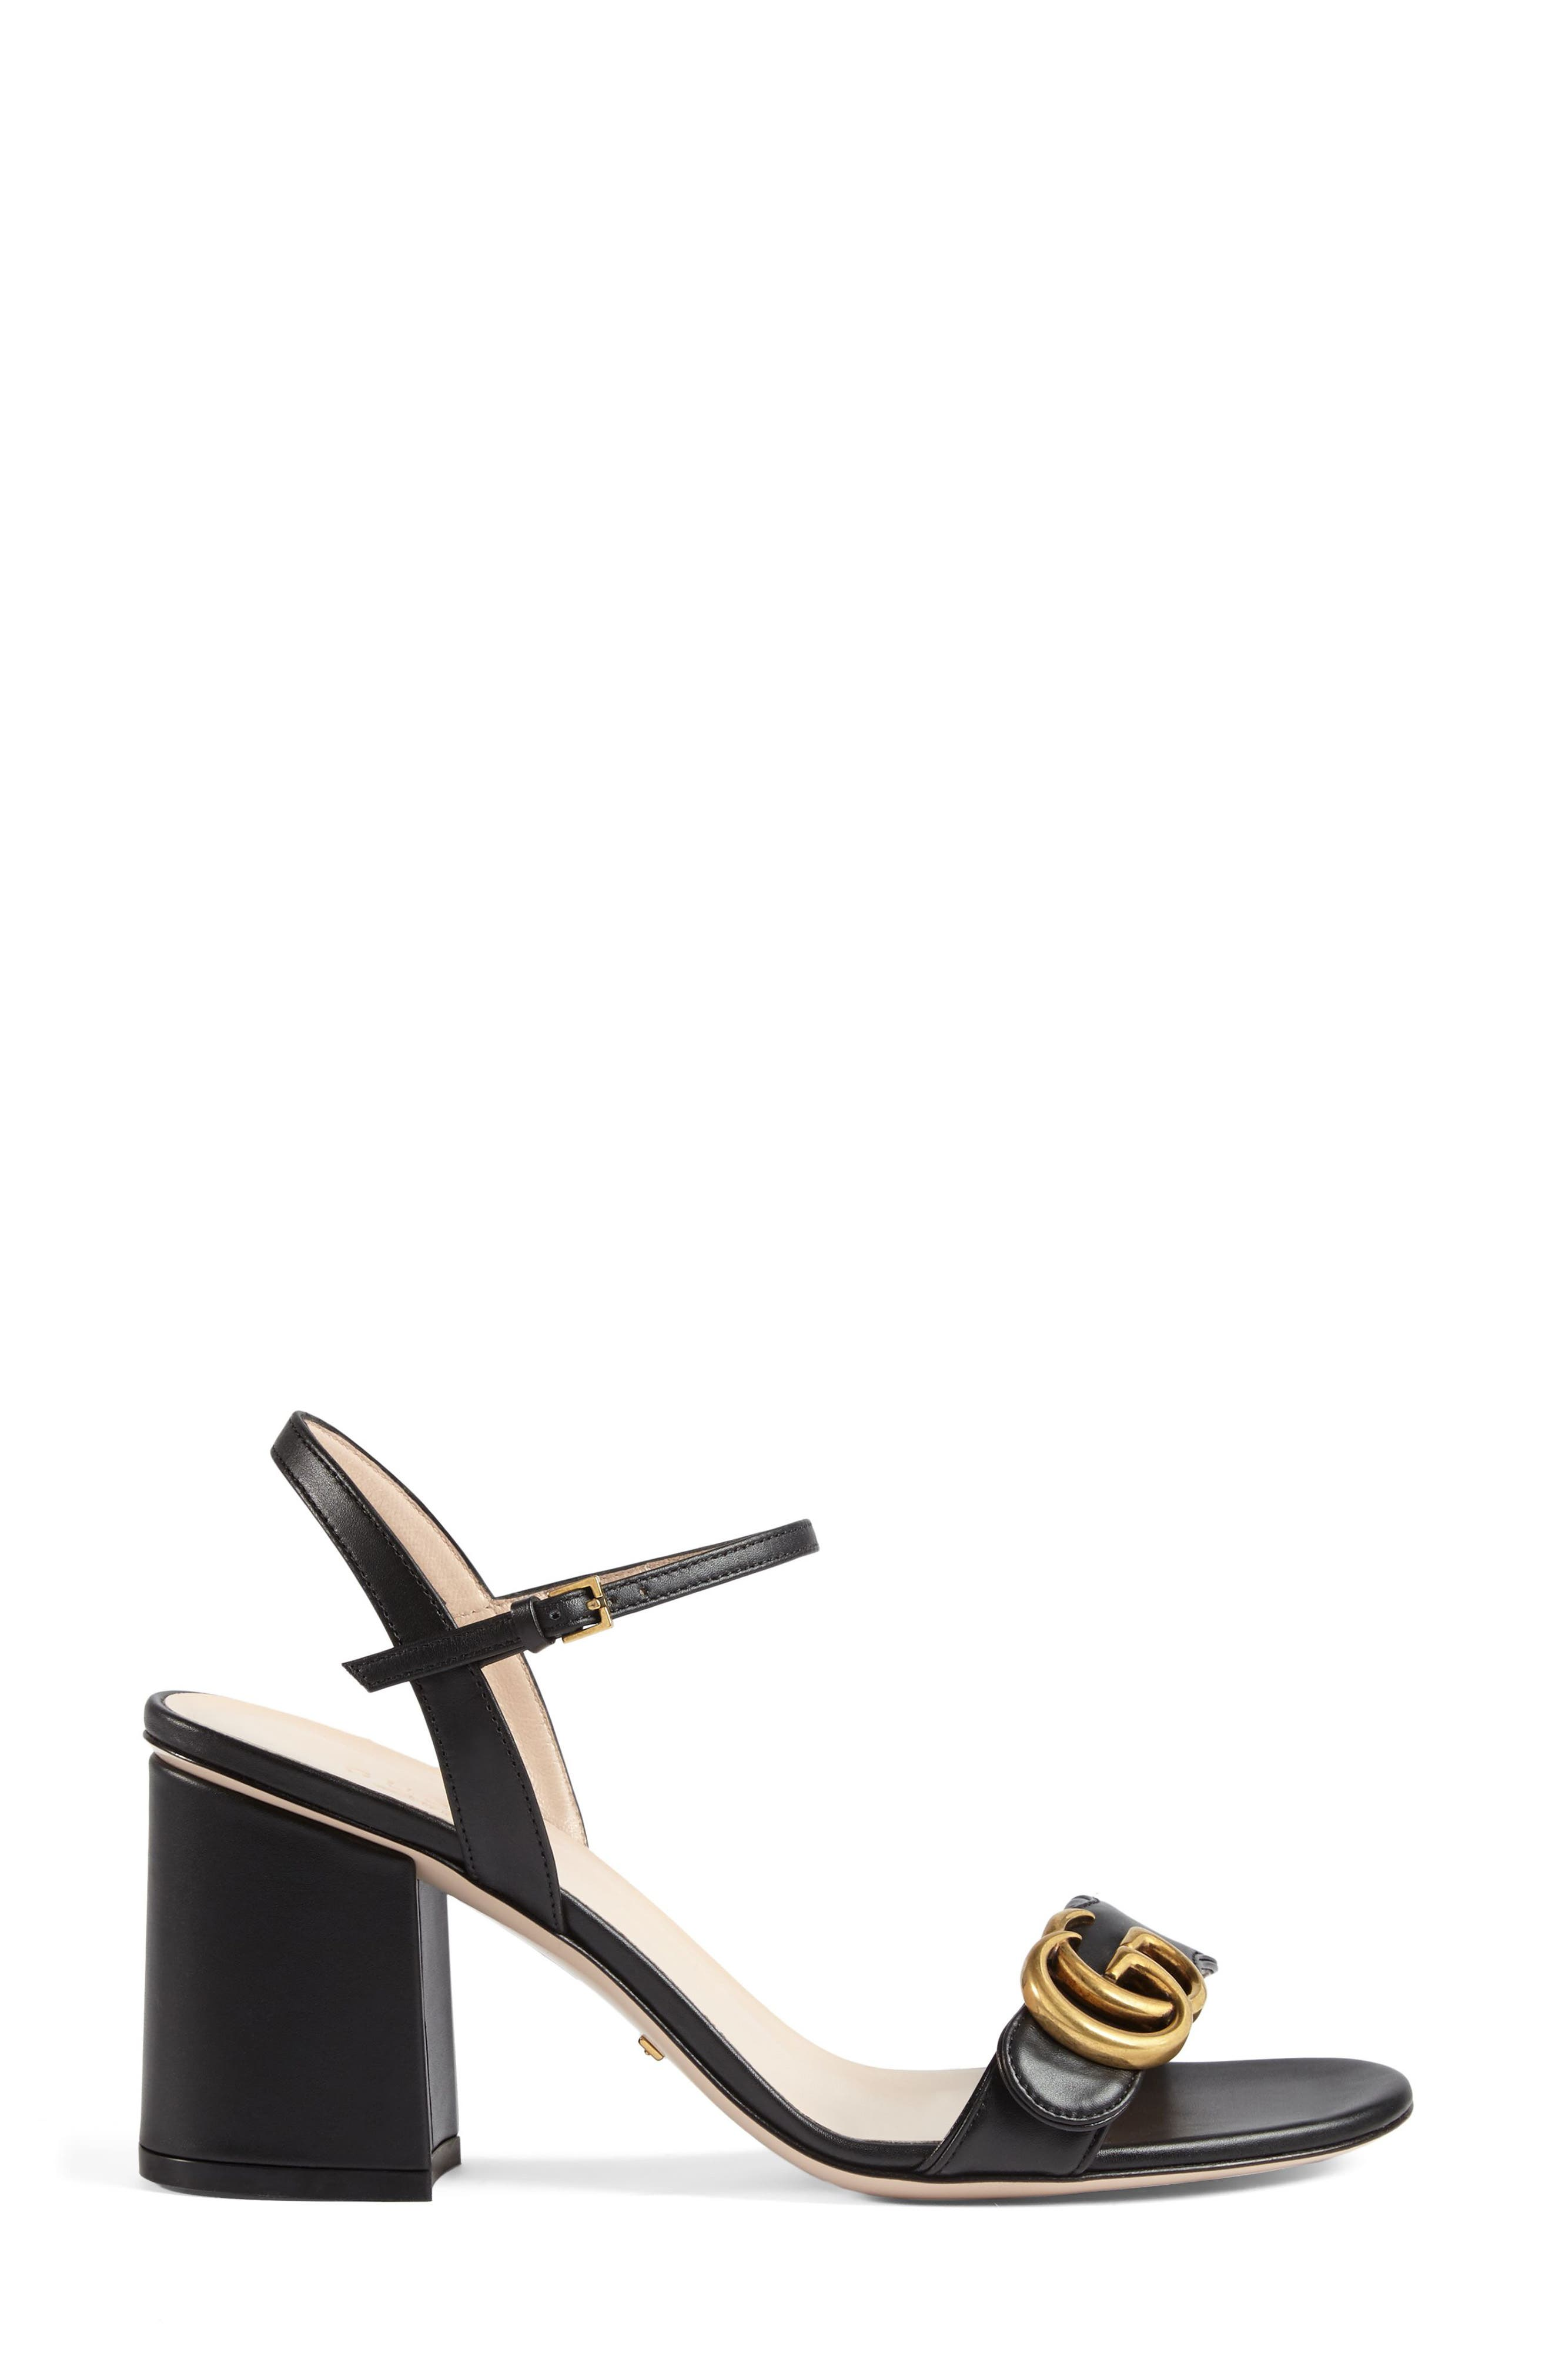 GUCCI, GG Marmont Sandal, Alternate thumbnail 3, color, BLACK LEATHER